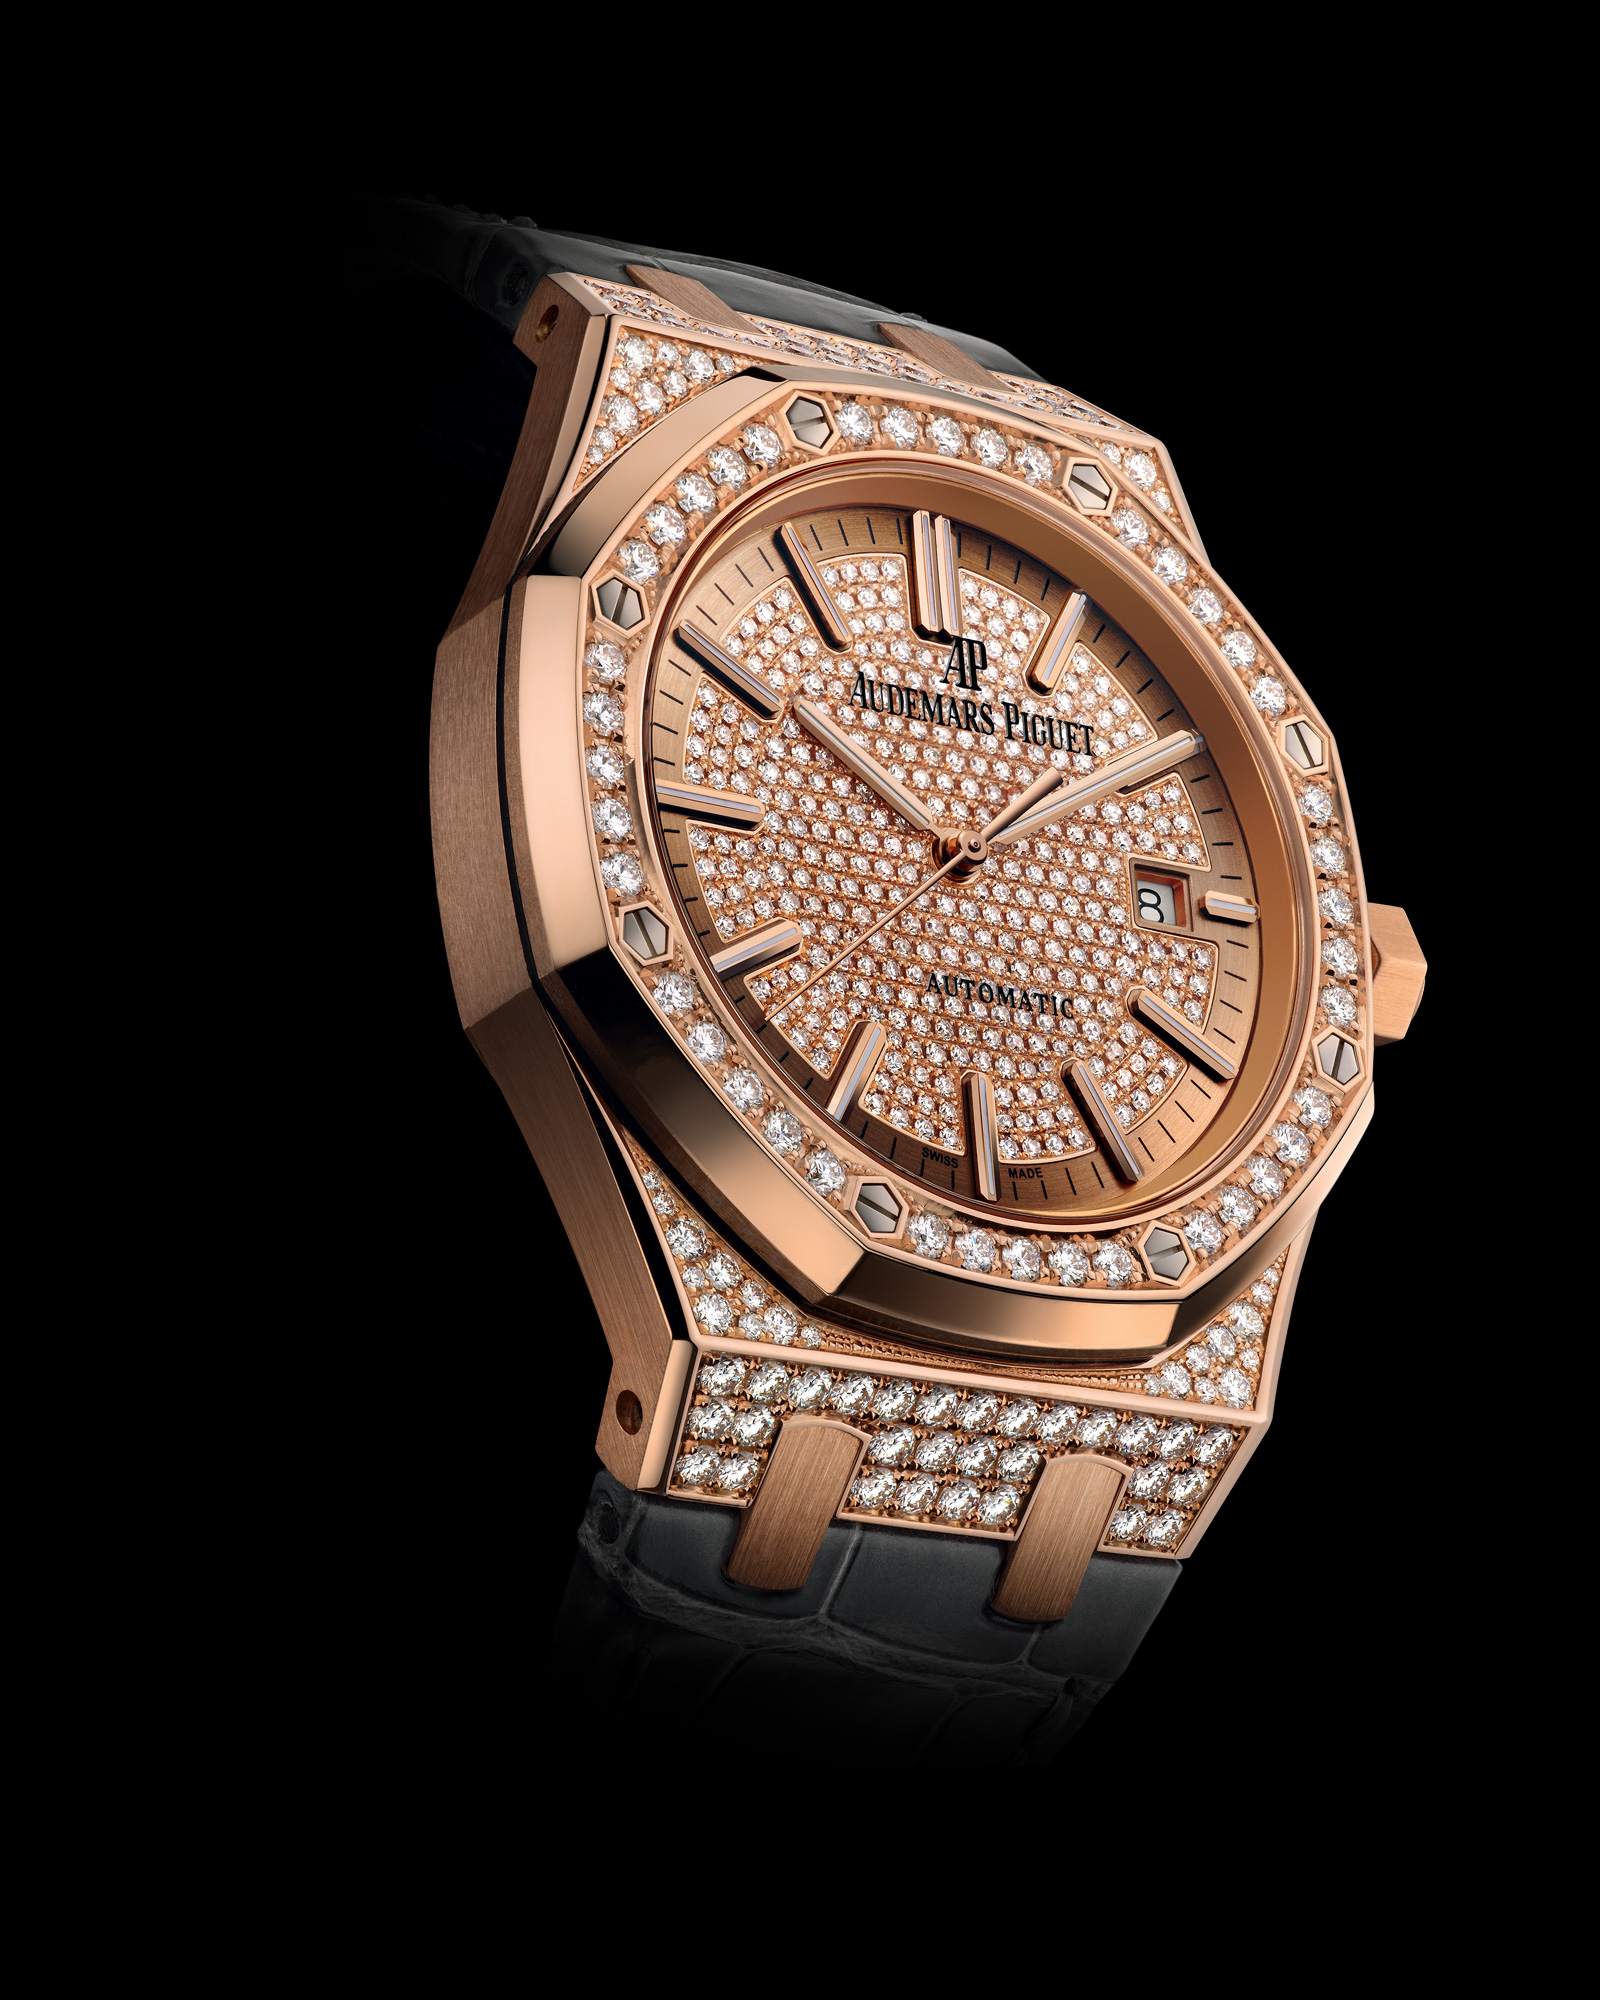 Audemars Piguet Royal Oak Automatique - Réf: 15402ORZZD003CR02